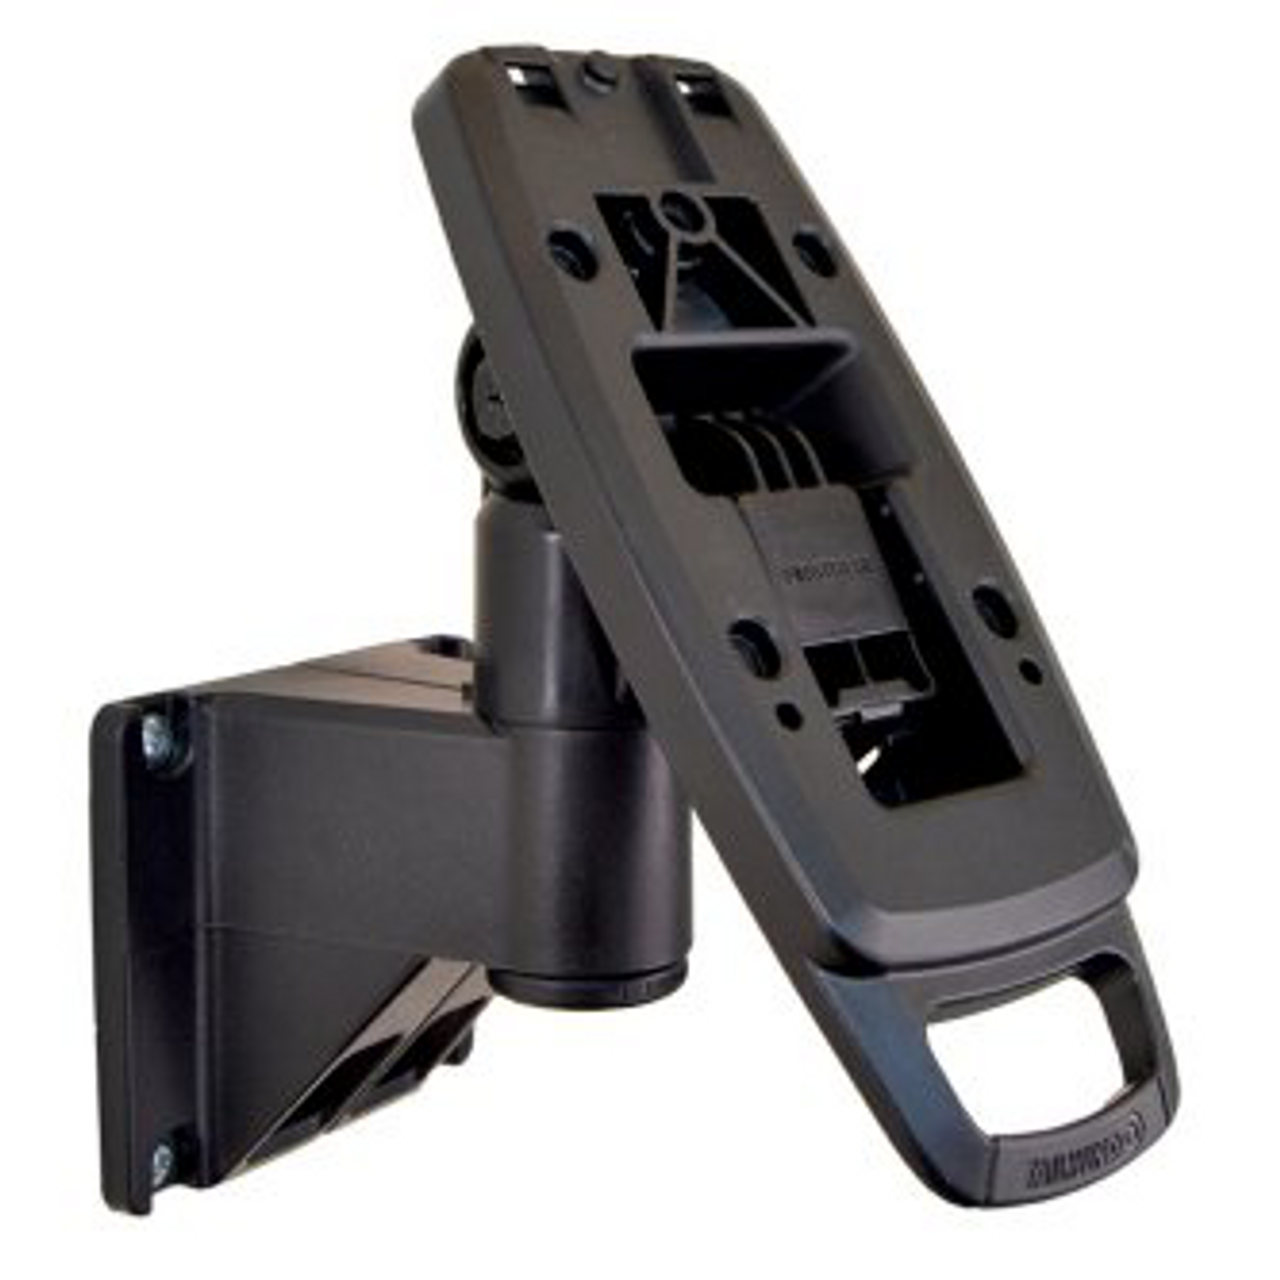 Verifone P200/P400 First Base Contour Wall Mount by Tailwind